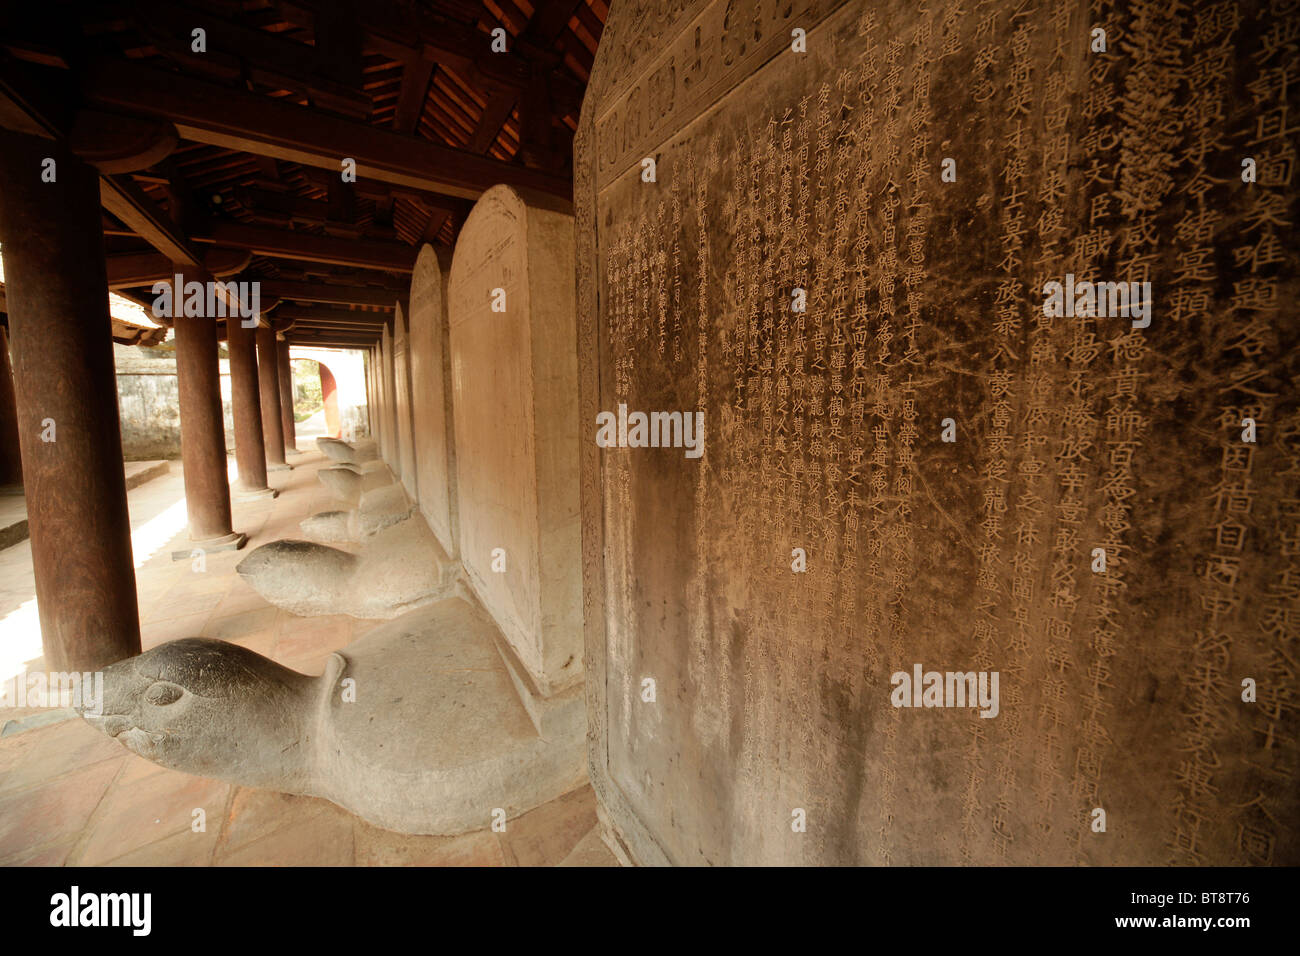 Memorial tablets on stone turtles at the Temple of Literature Van Mieu, Hanoi, Vietnam, Asia - Stock Image